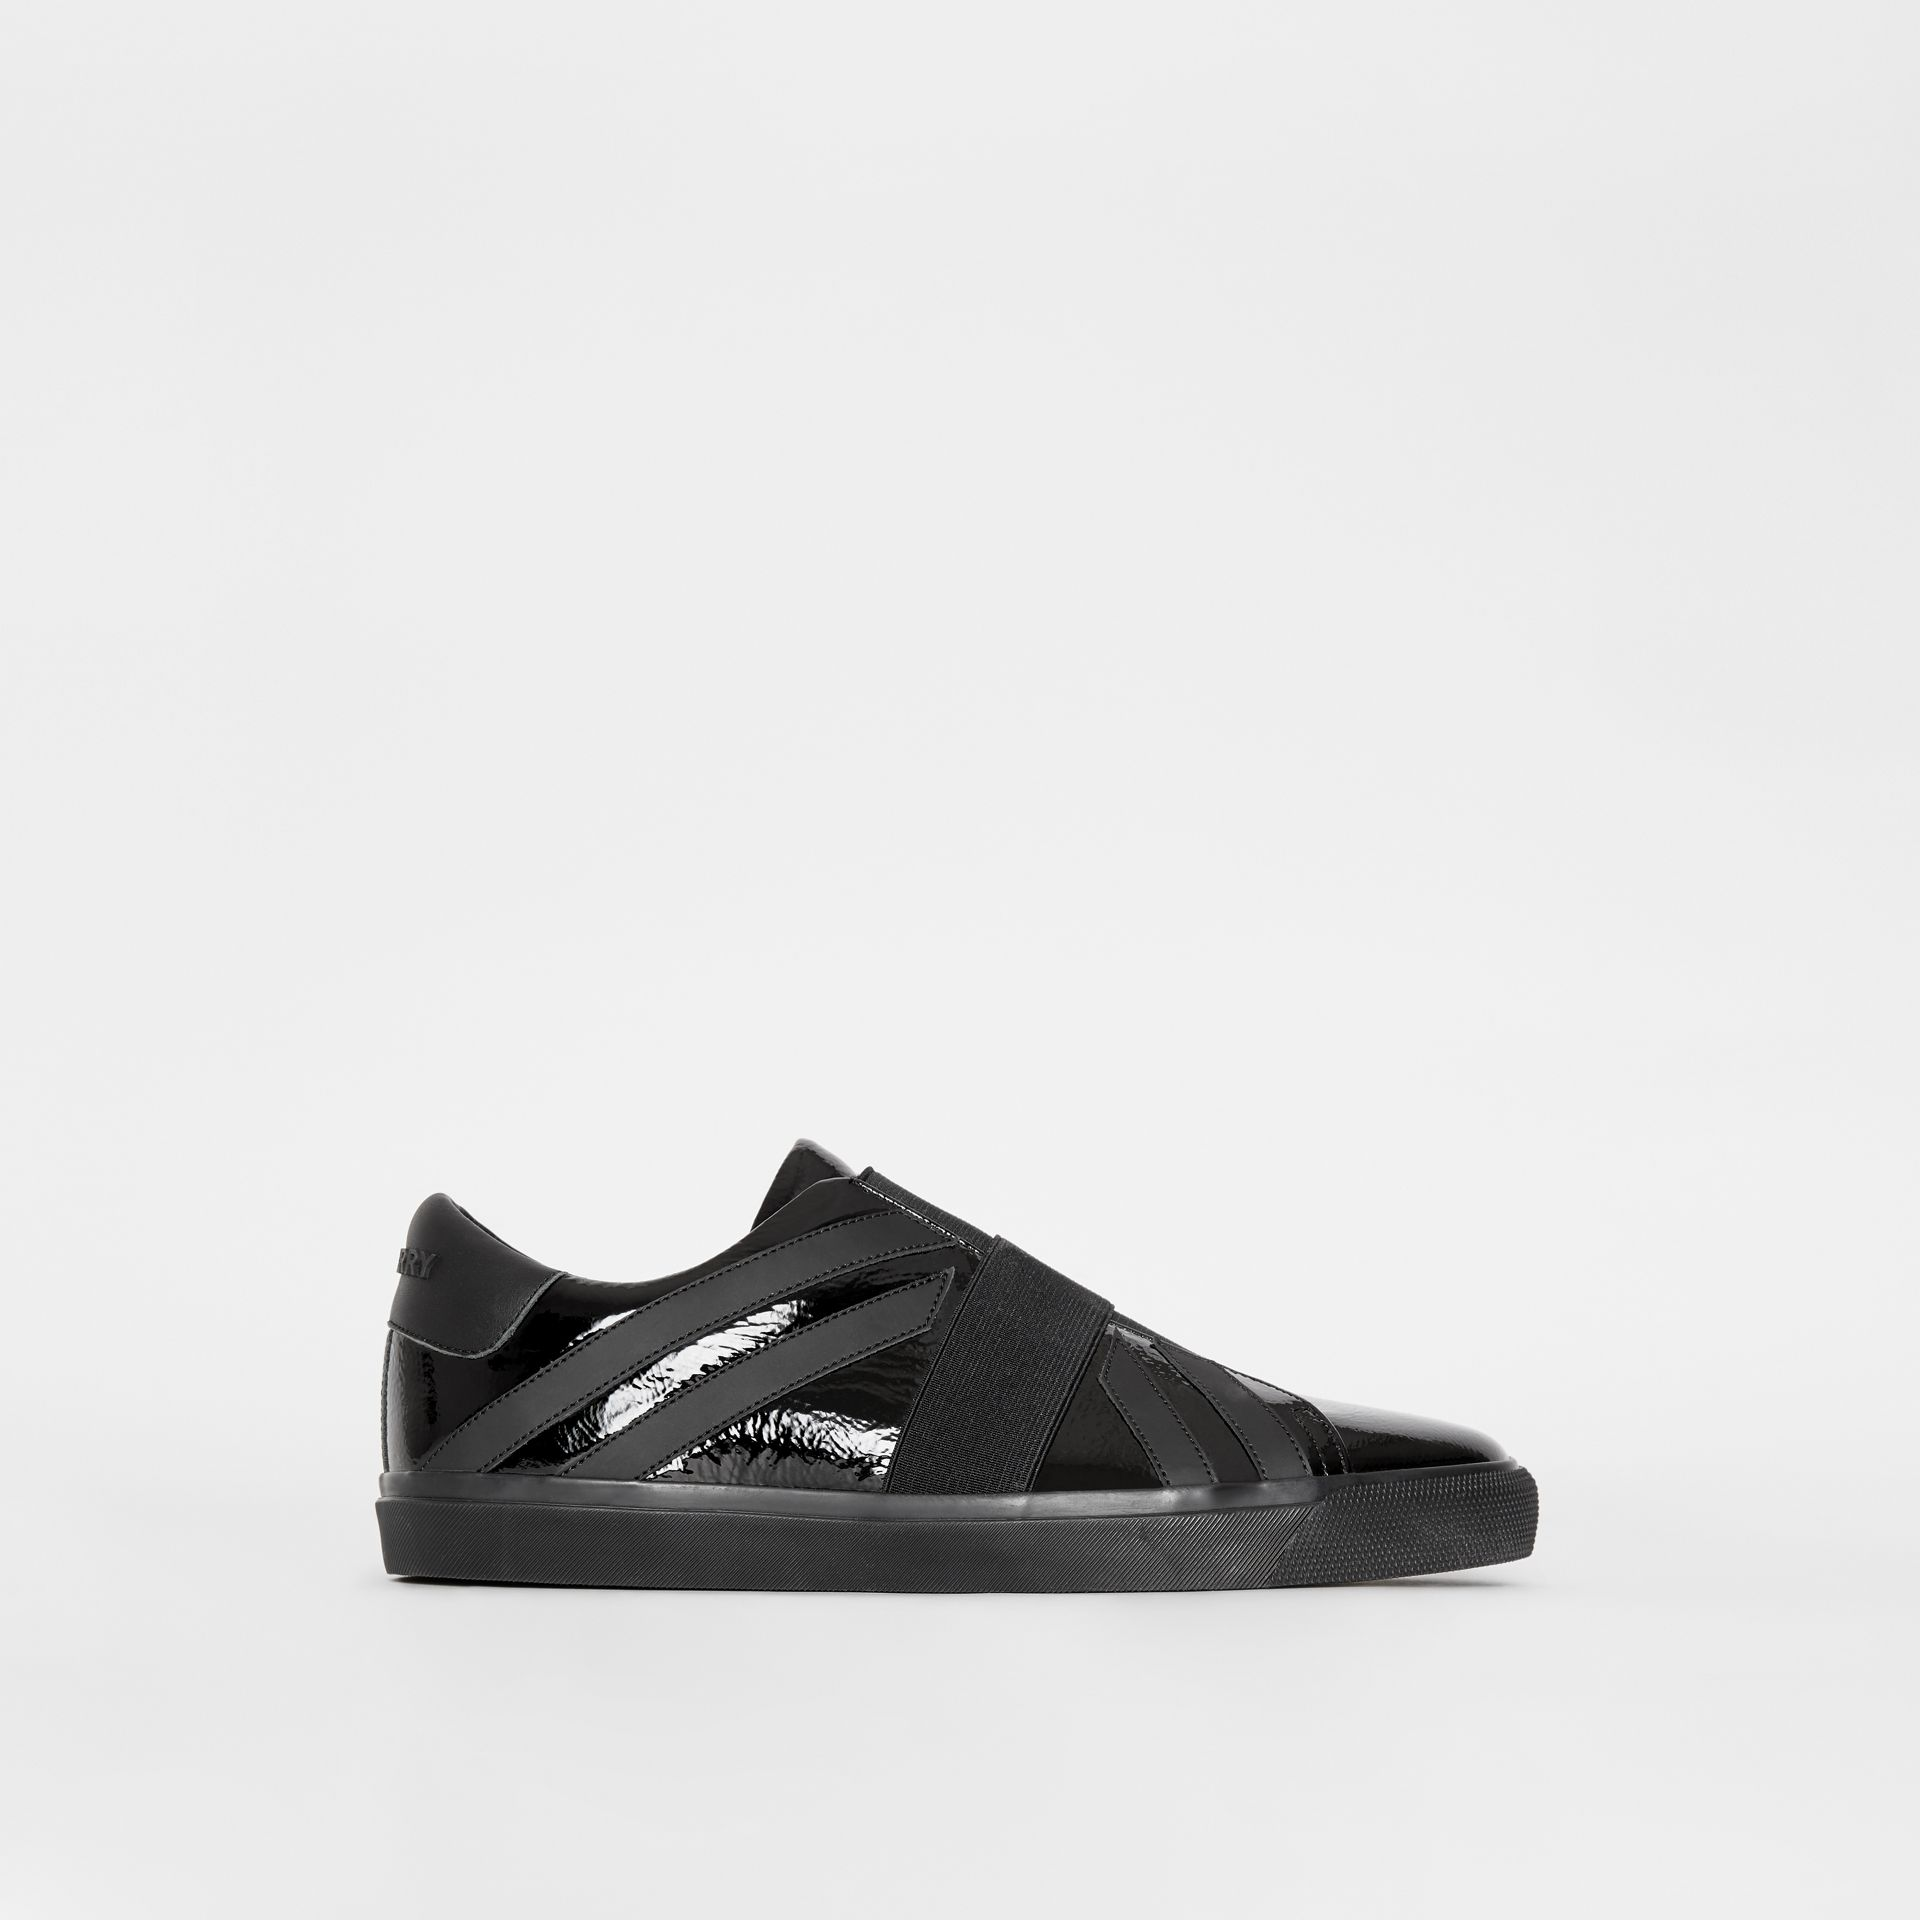 Union Jack Motif Slip-on Sneakers in Black - Women | Burberry - gallery image 5